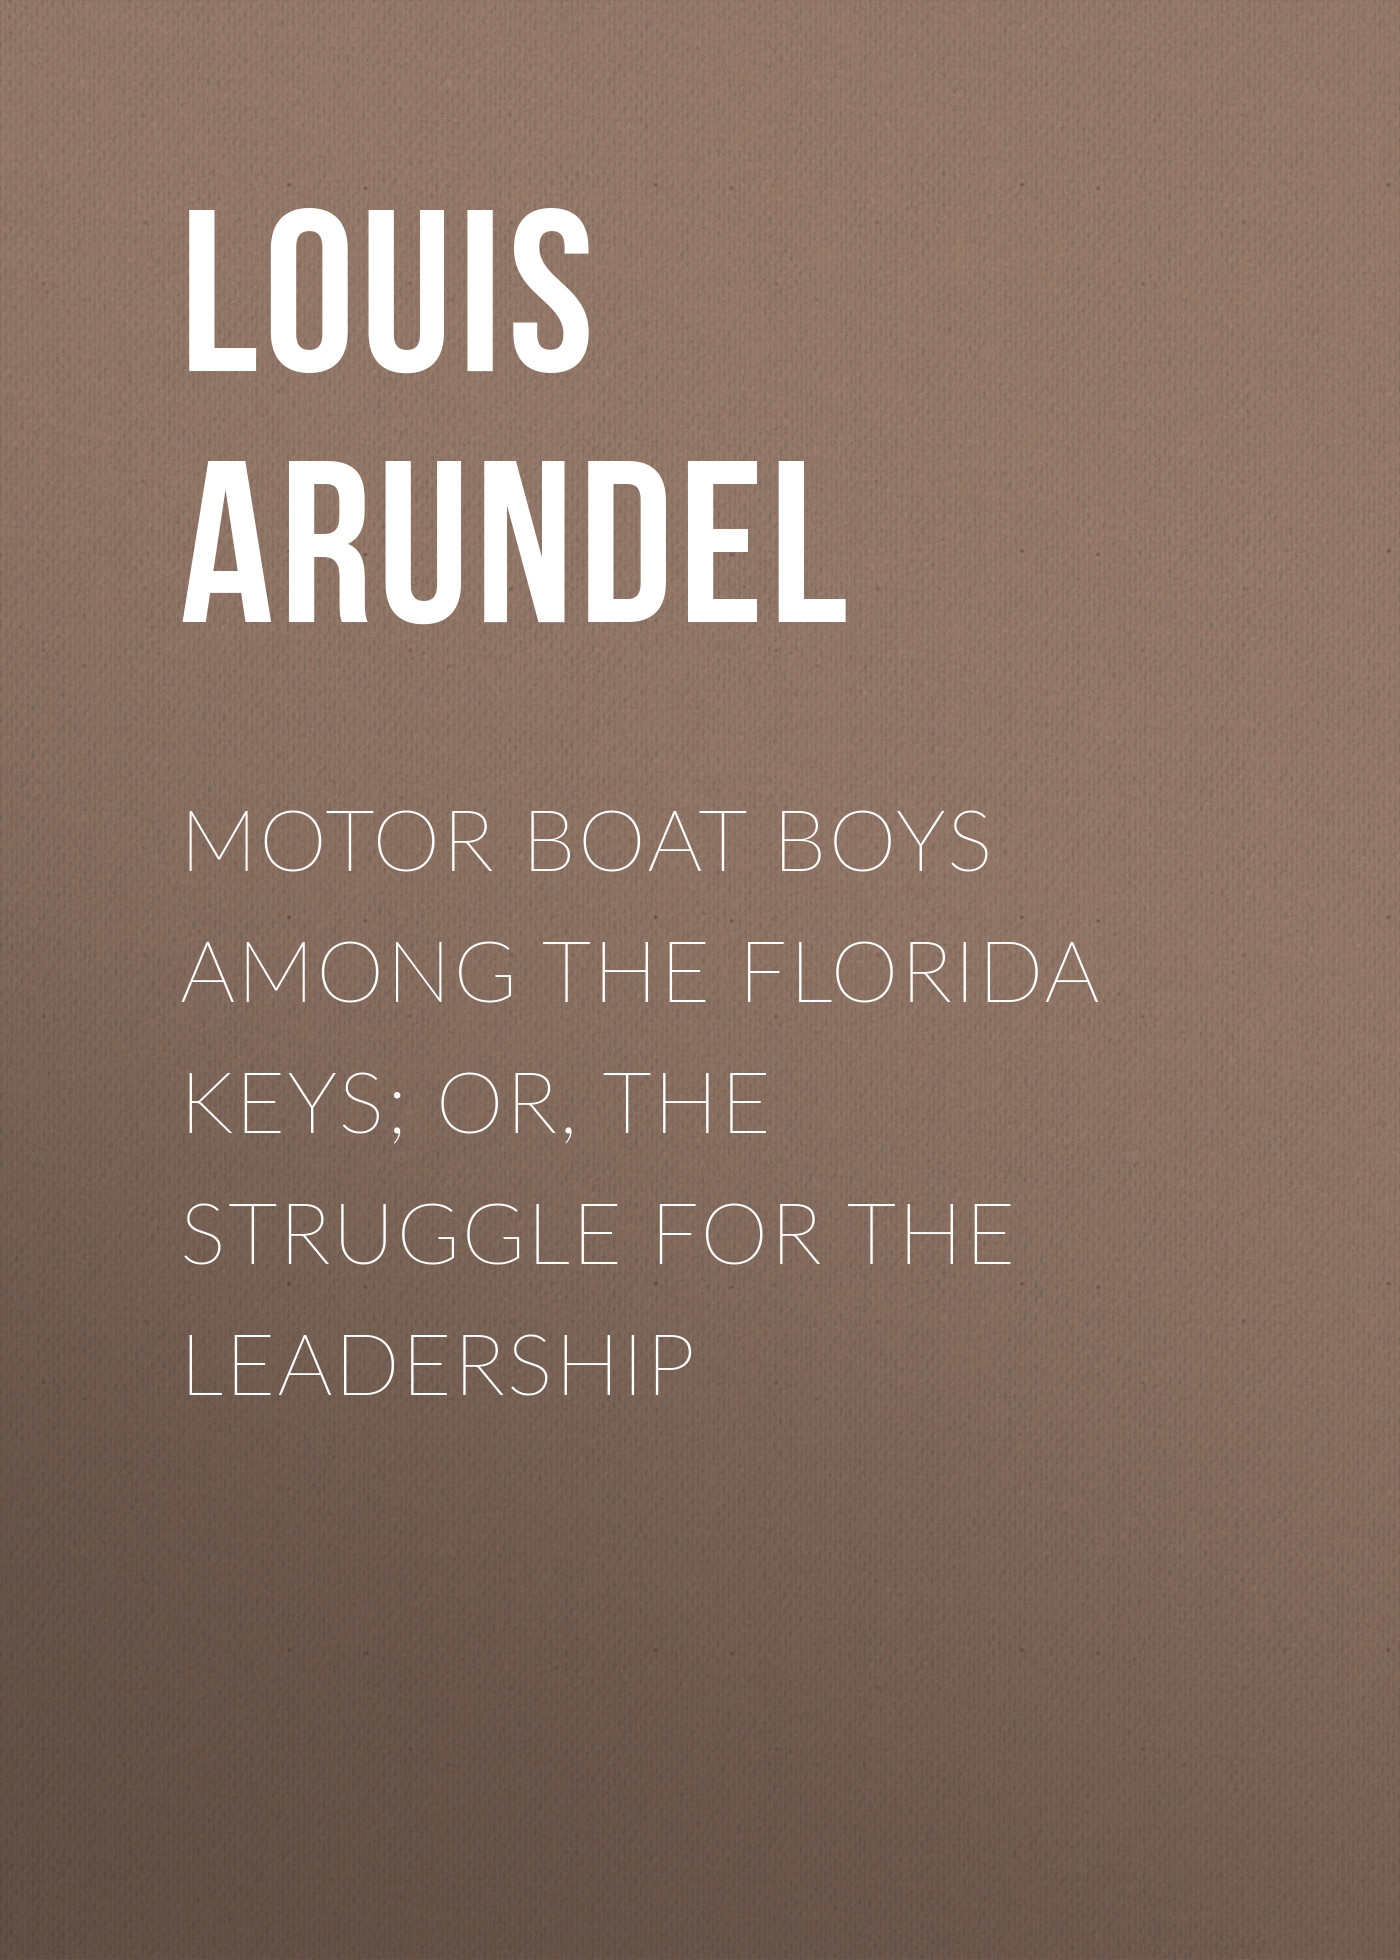 Arundel Louis Motor Boat Boys Among the Florida Keys; Or, The Struggle for the Leadership 220vac loud 112db motor driven air raid siren metal horn industry boat alarm